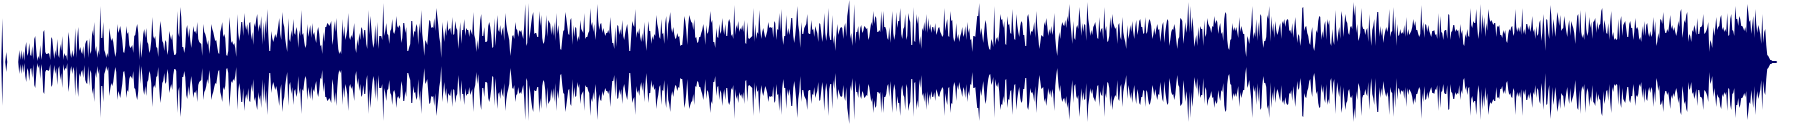 waveform of track #76283